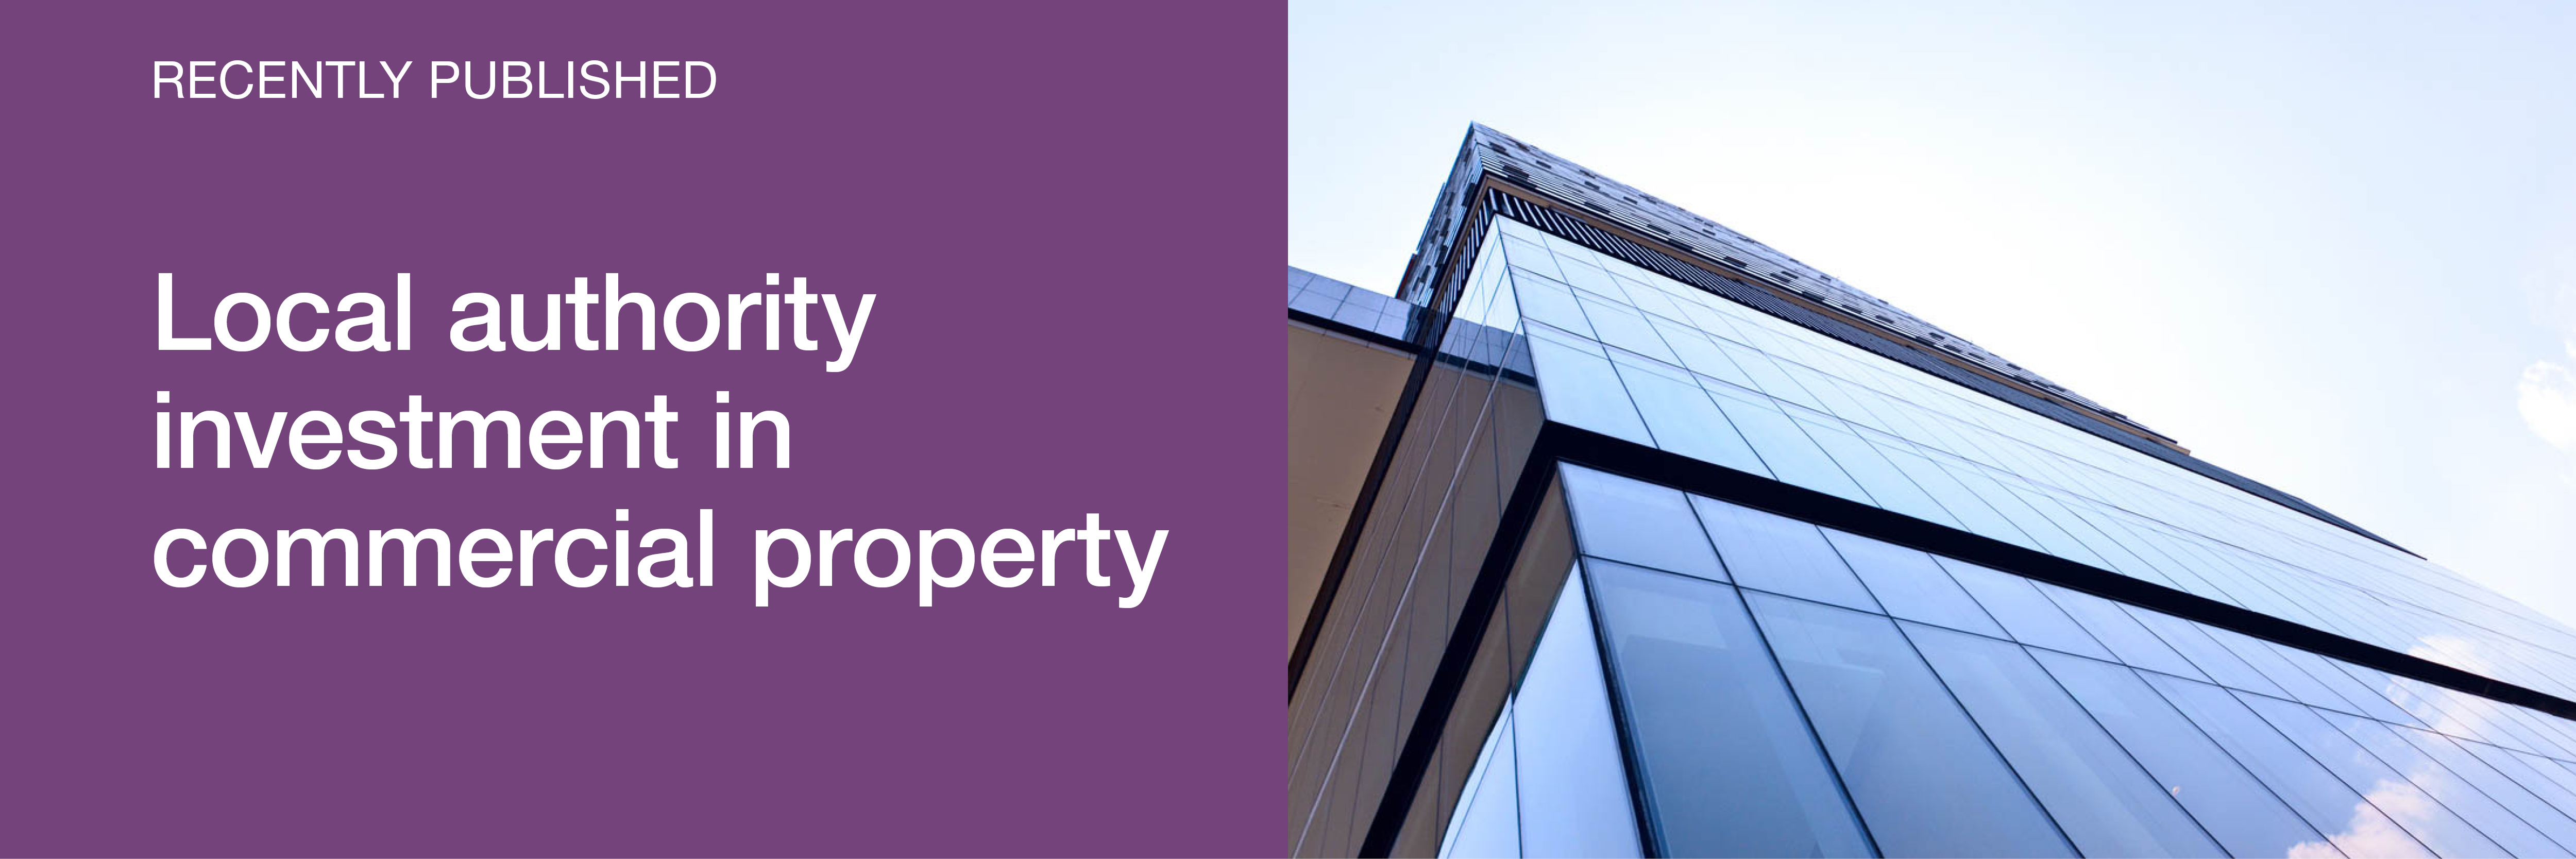 Local authority investment in commercial property report